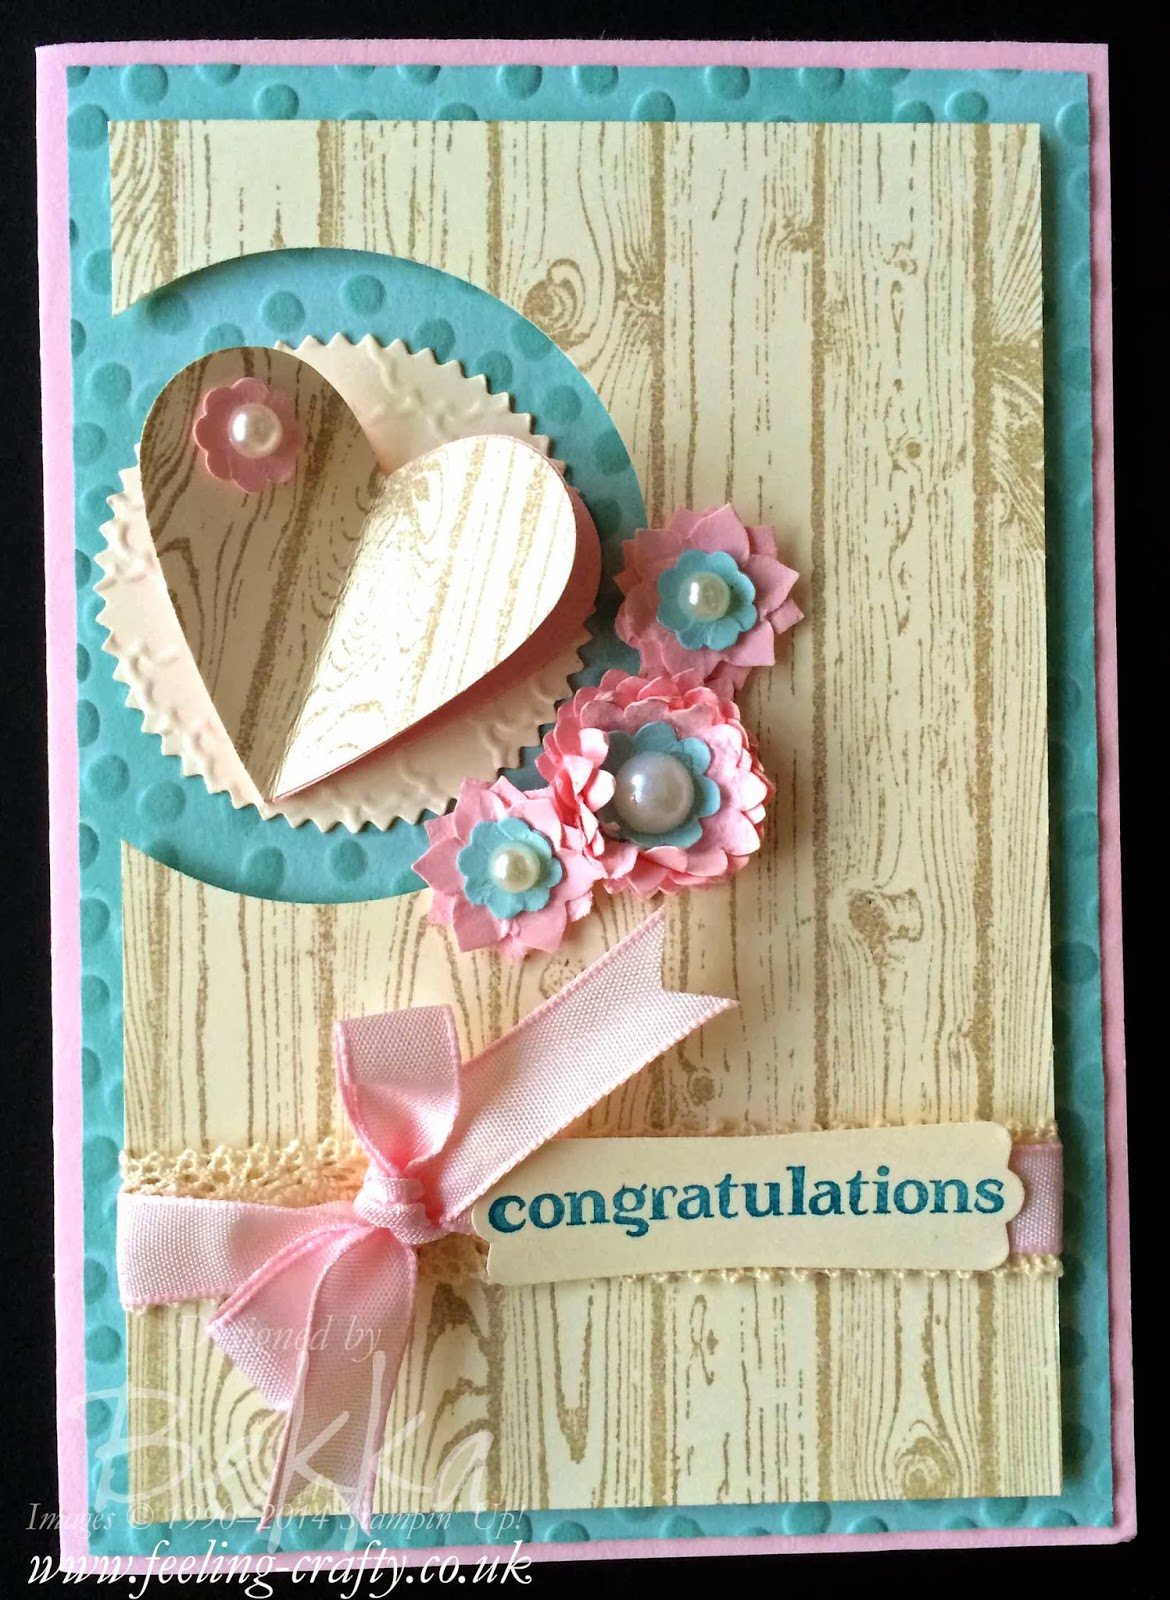 Engagement Congratulations Card made with Stampin' Up! Supplies - find out more here